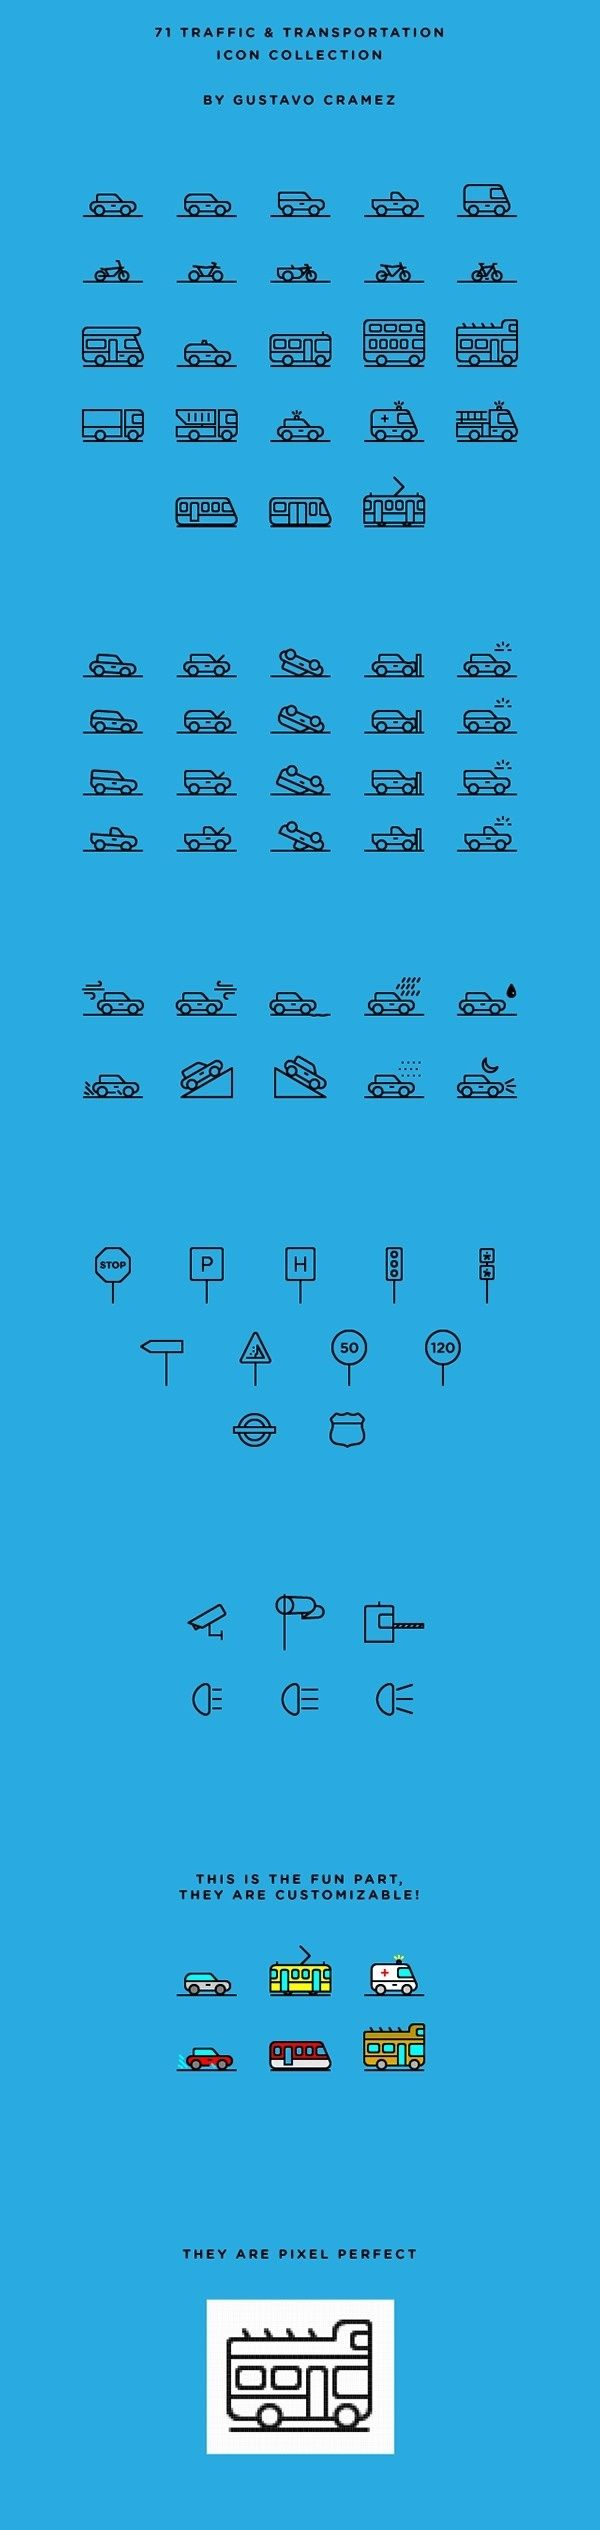 71 Traffic & Transportation Icon Collection | Free on Behance in PIctogram